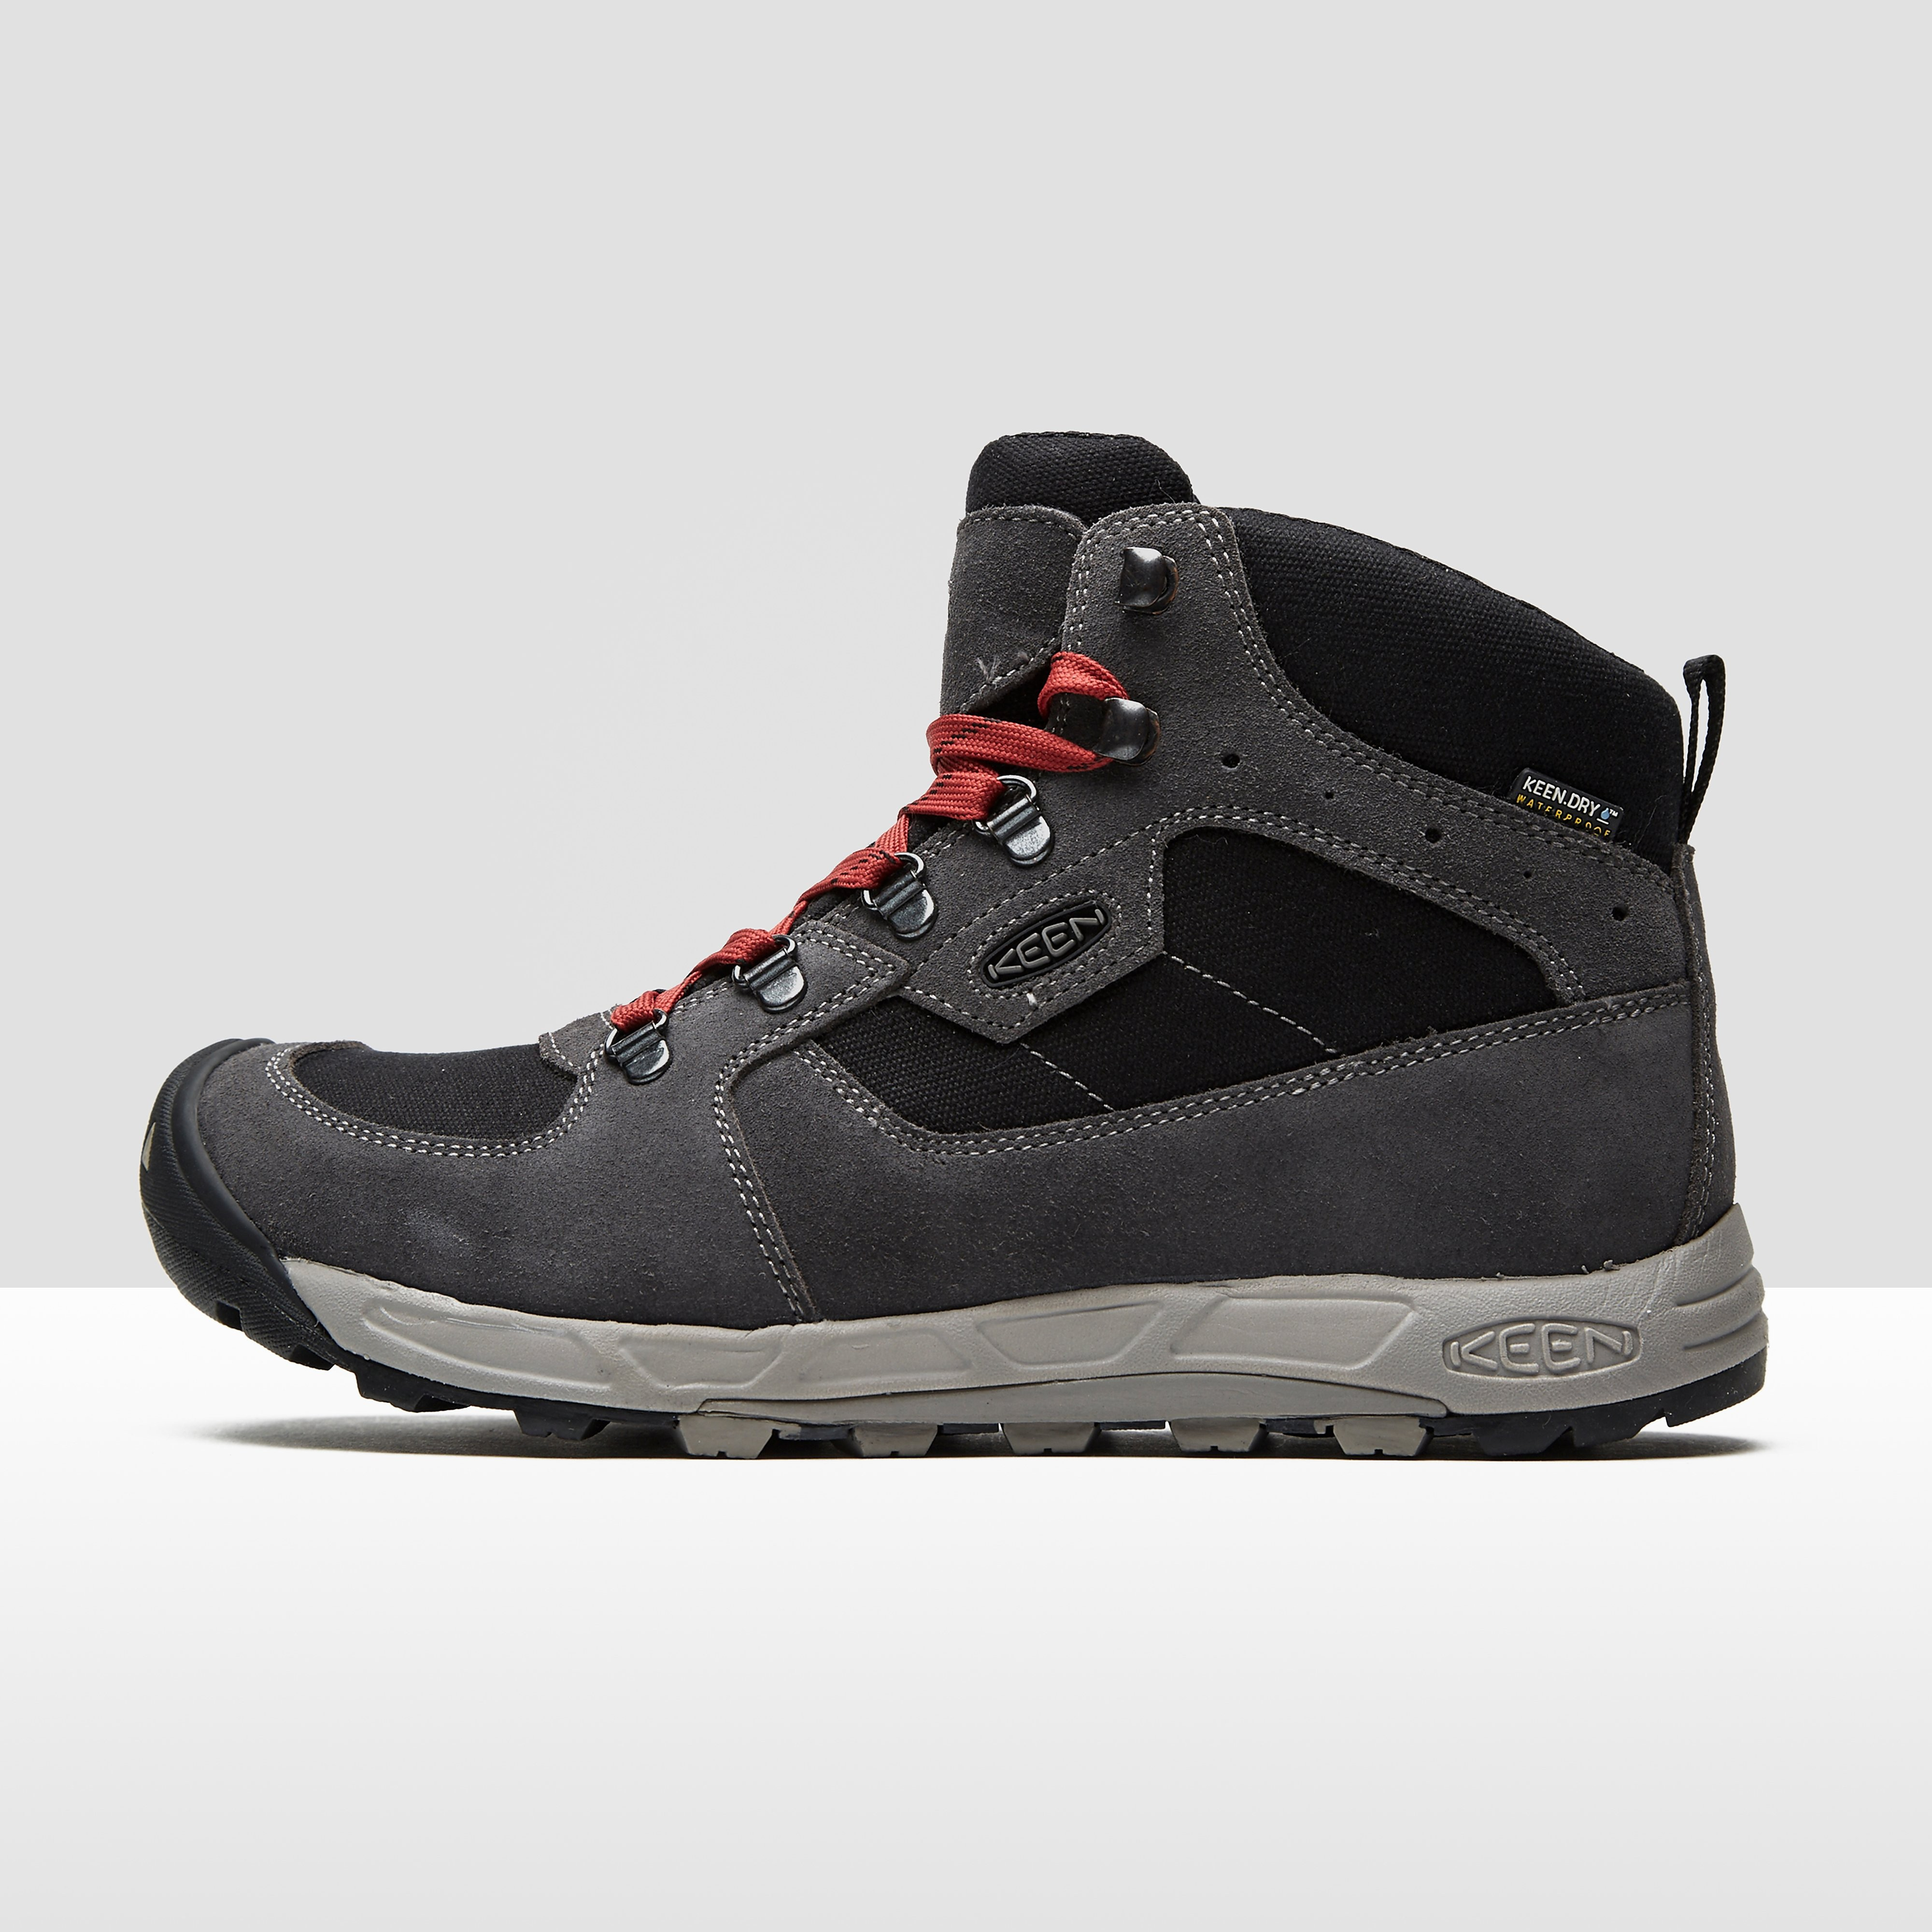 Keen Westward Waterproof Men's Hiking Boots